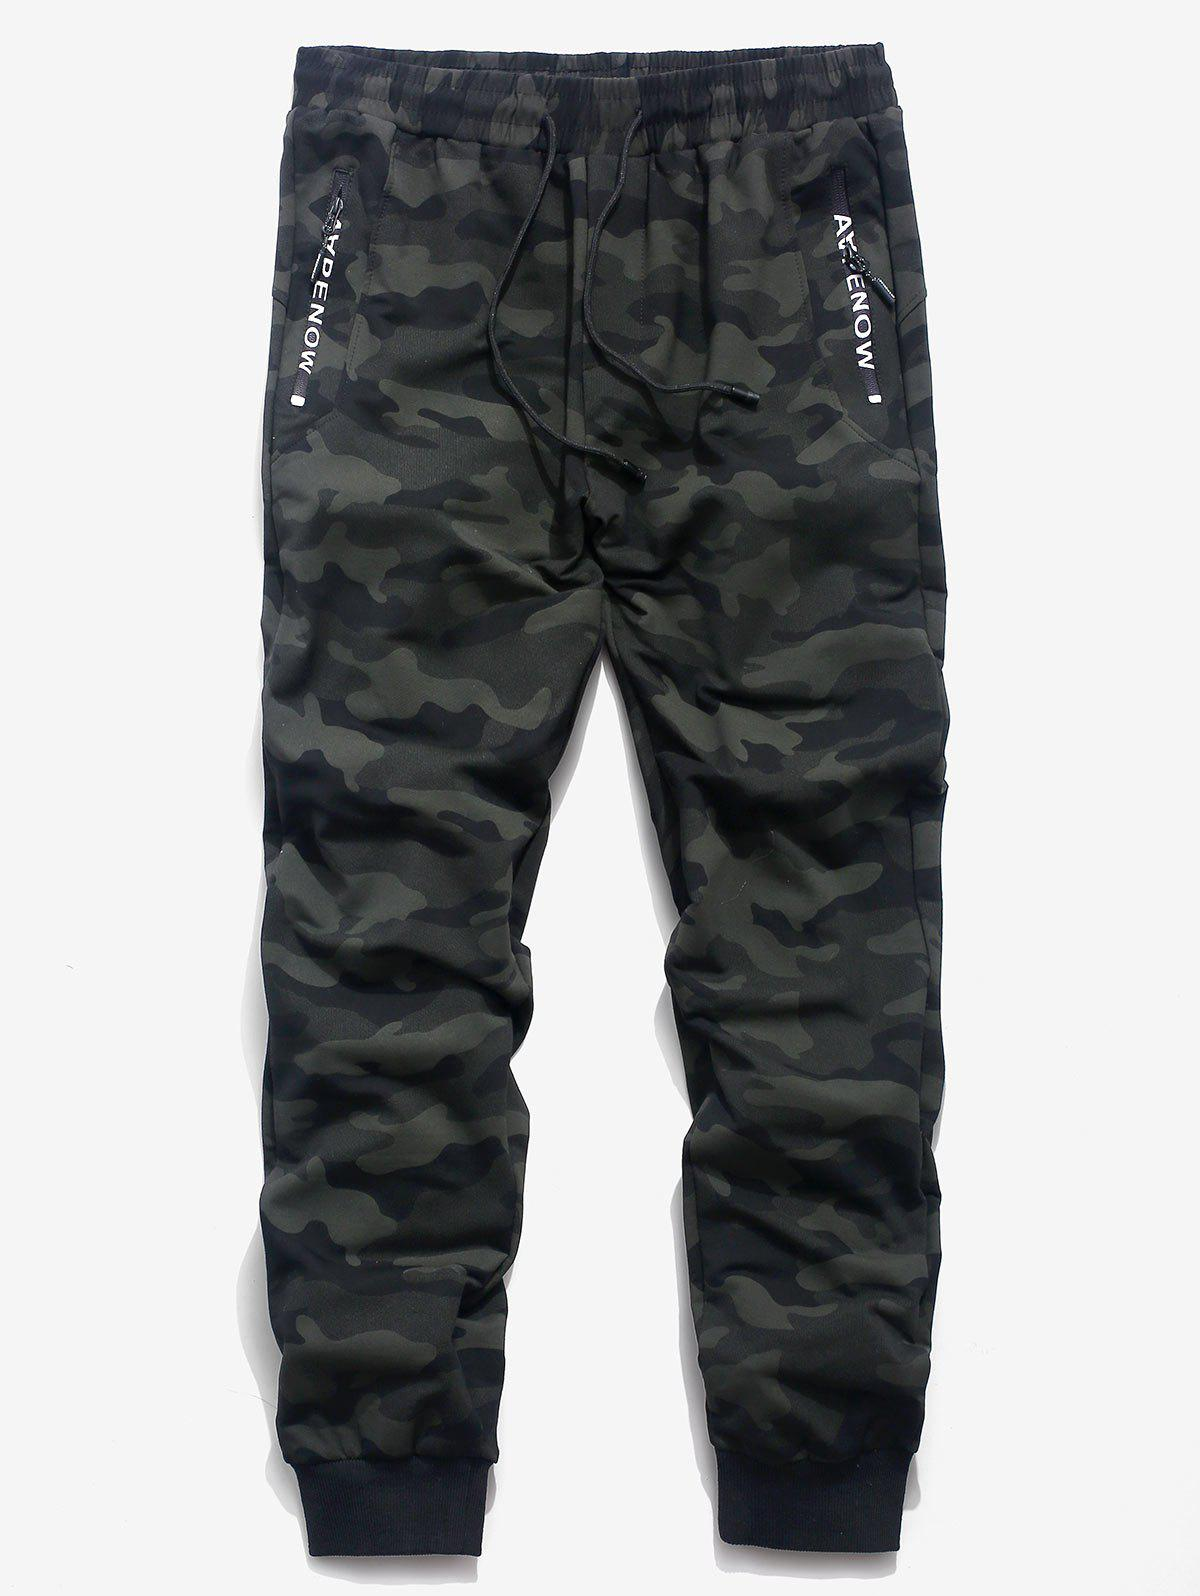 Discount Camouflage Design Casual Jogger Pants